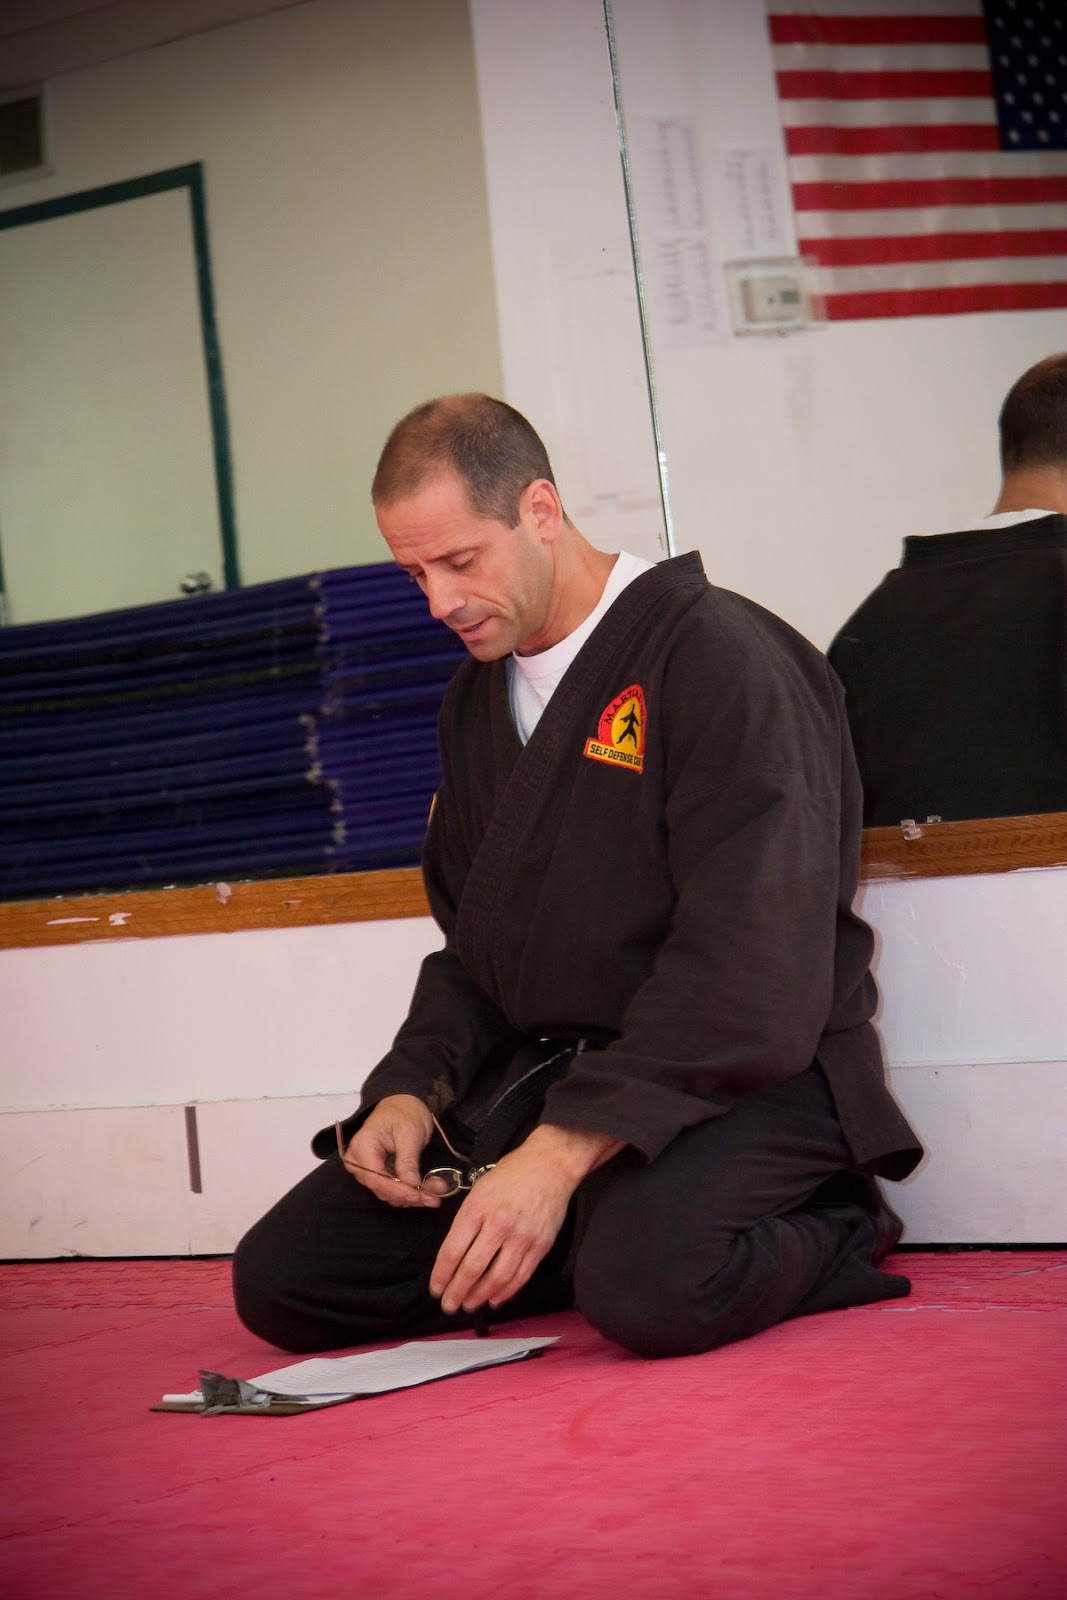 David Quinlan, Founder and Lead Instructor